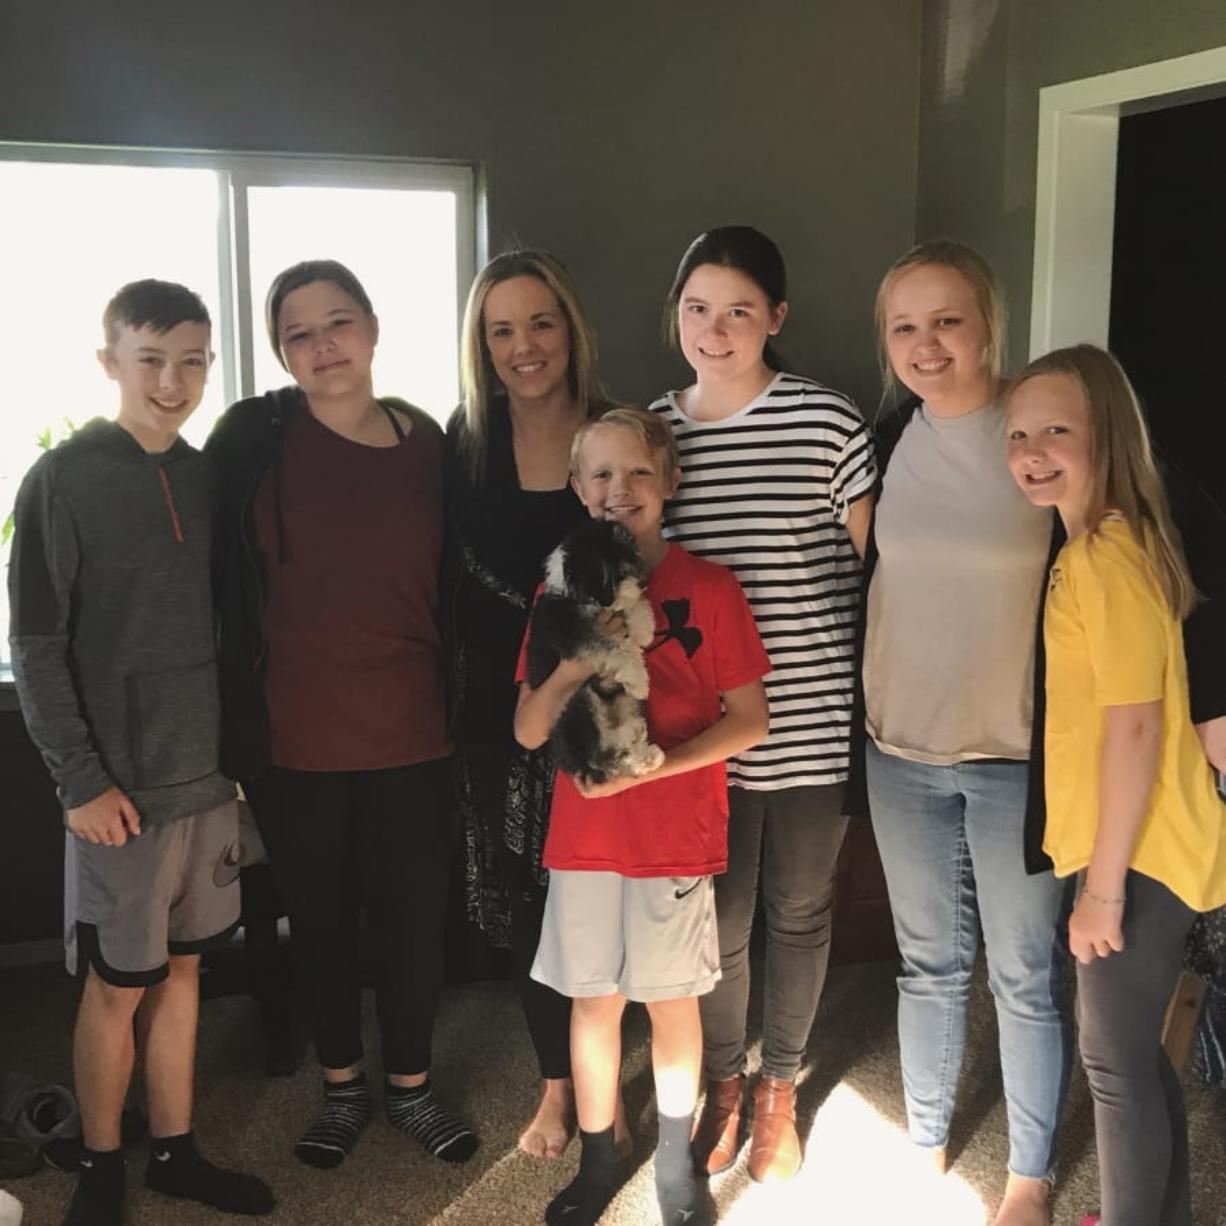 Ashley Eggleston, center, credits her three kids and three teenagers with saving her life after her heart stopped earlier this month. The teens called 911, started CPR and comforted her kids while first responders worked on her. From left: Owen Meyer, Emilee Tikka, Eggleston, Evan Meyer, Kate Nylund, Eva Sarkinin and Nora Meyer.